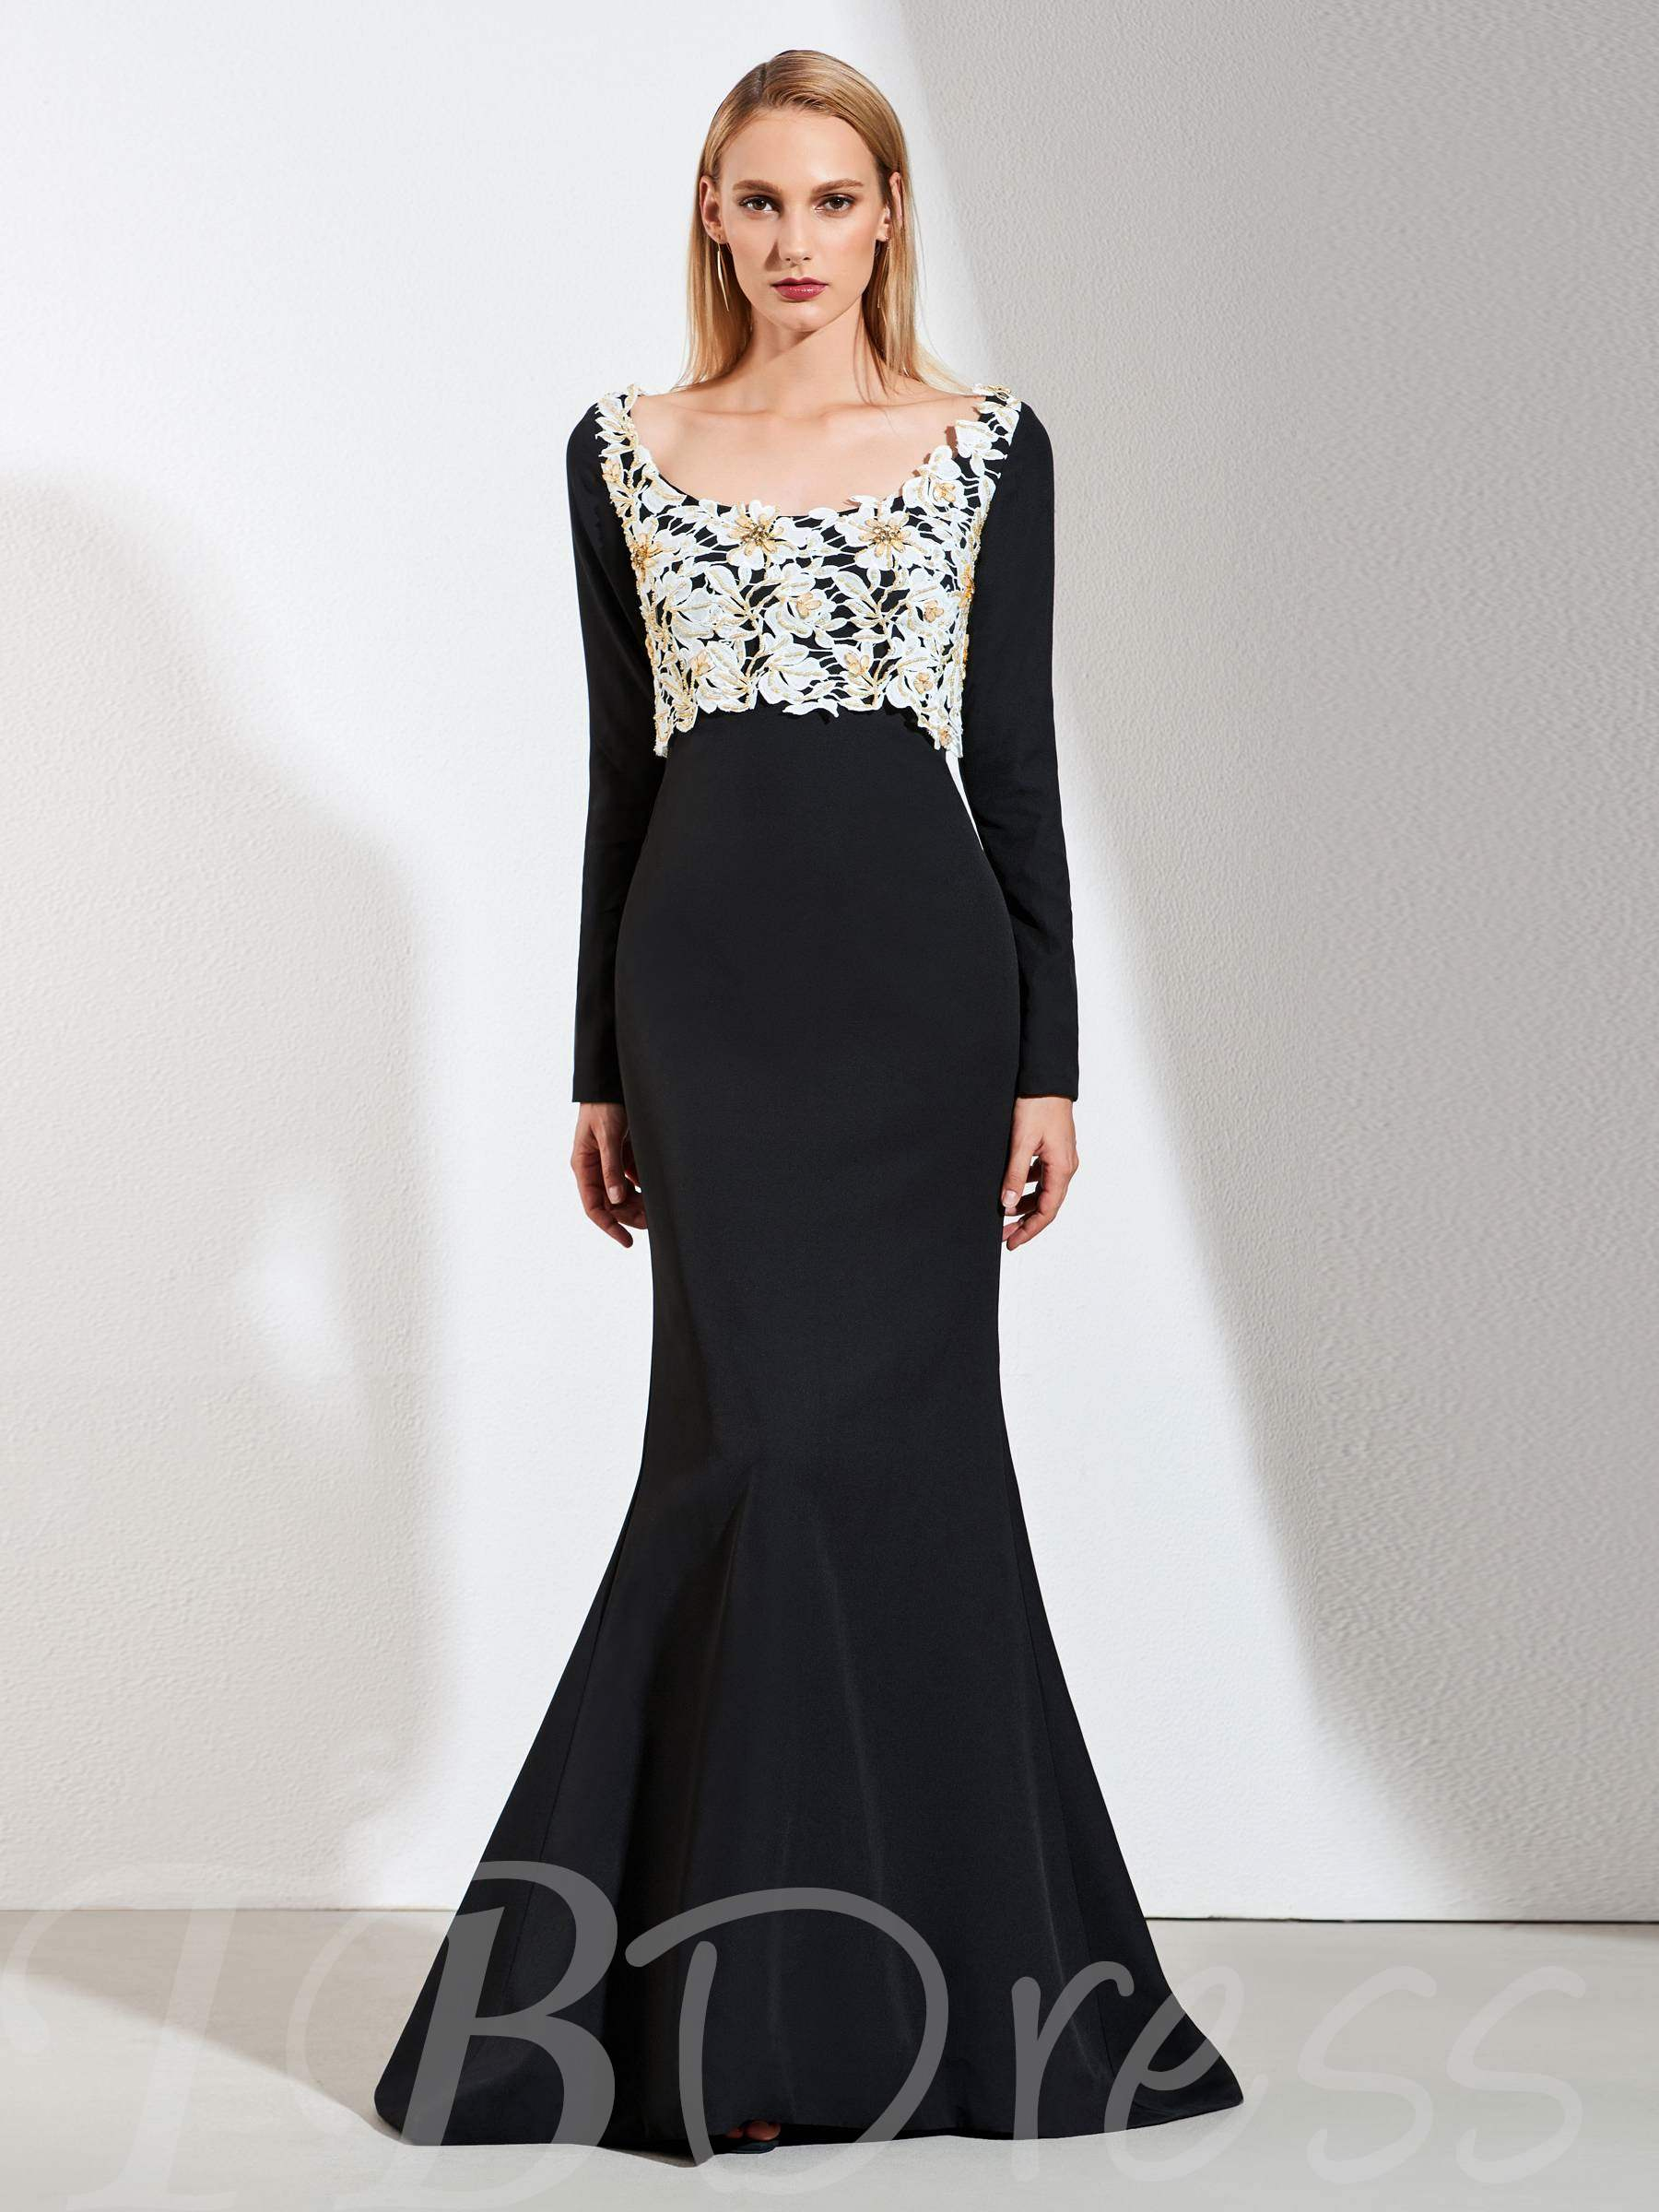 Buy Mermaid Lace Square Beaded Evening Dress, Spring,Summer,Fall,Winter, 13389362 for $146.99 in TBDress store